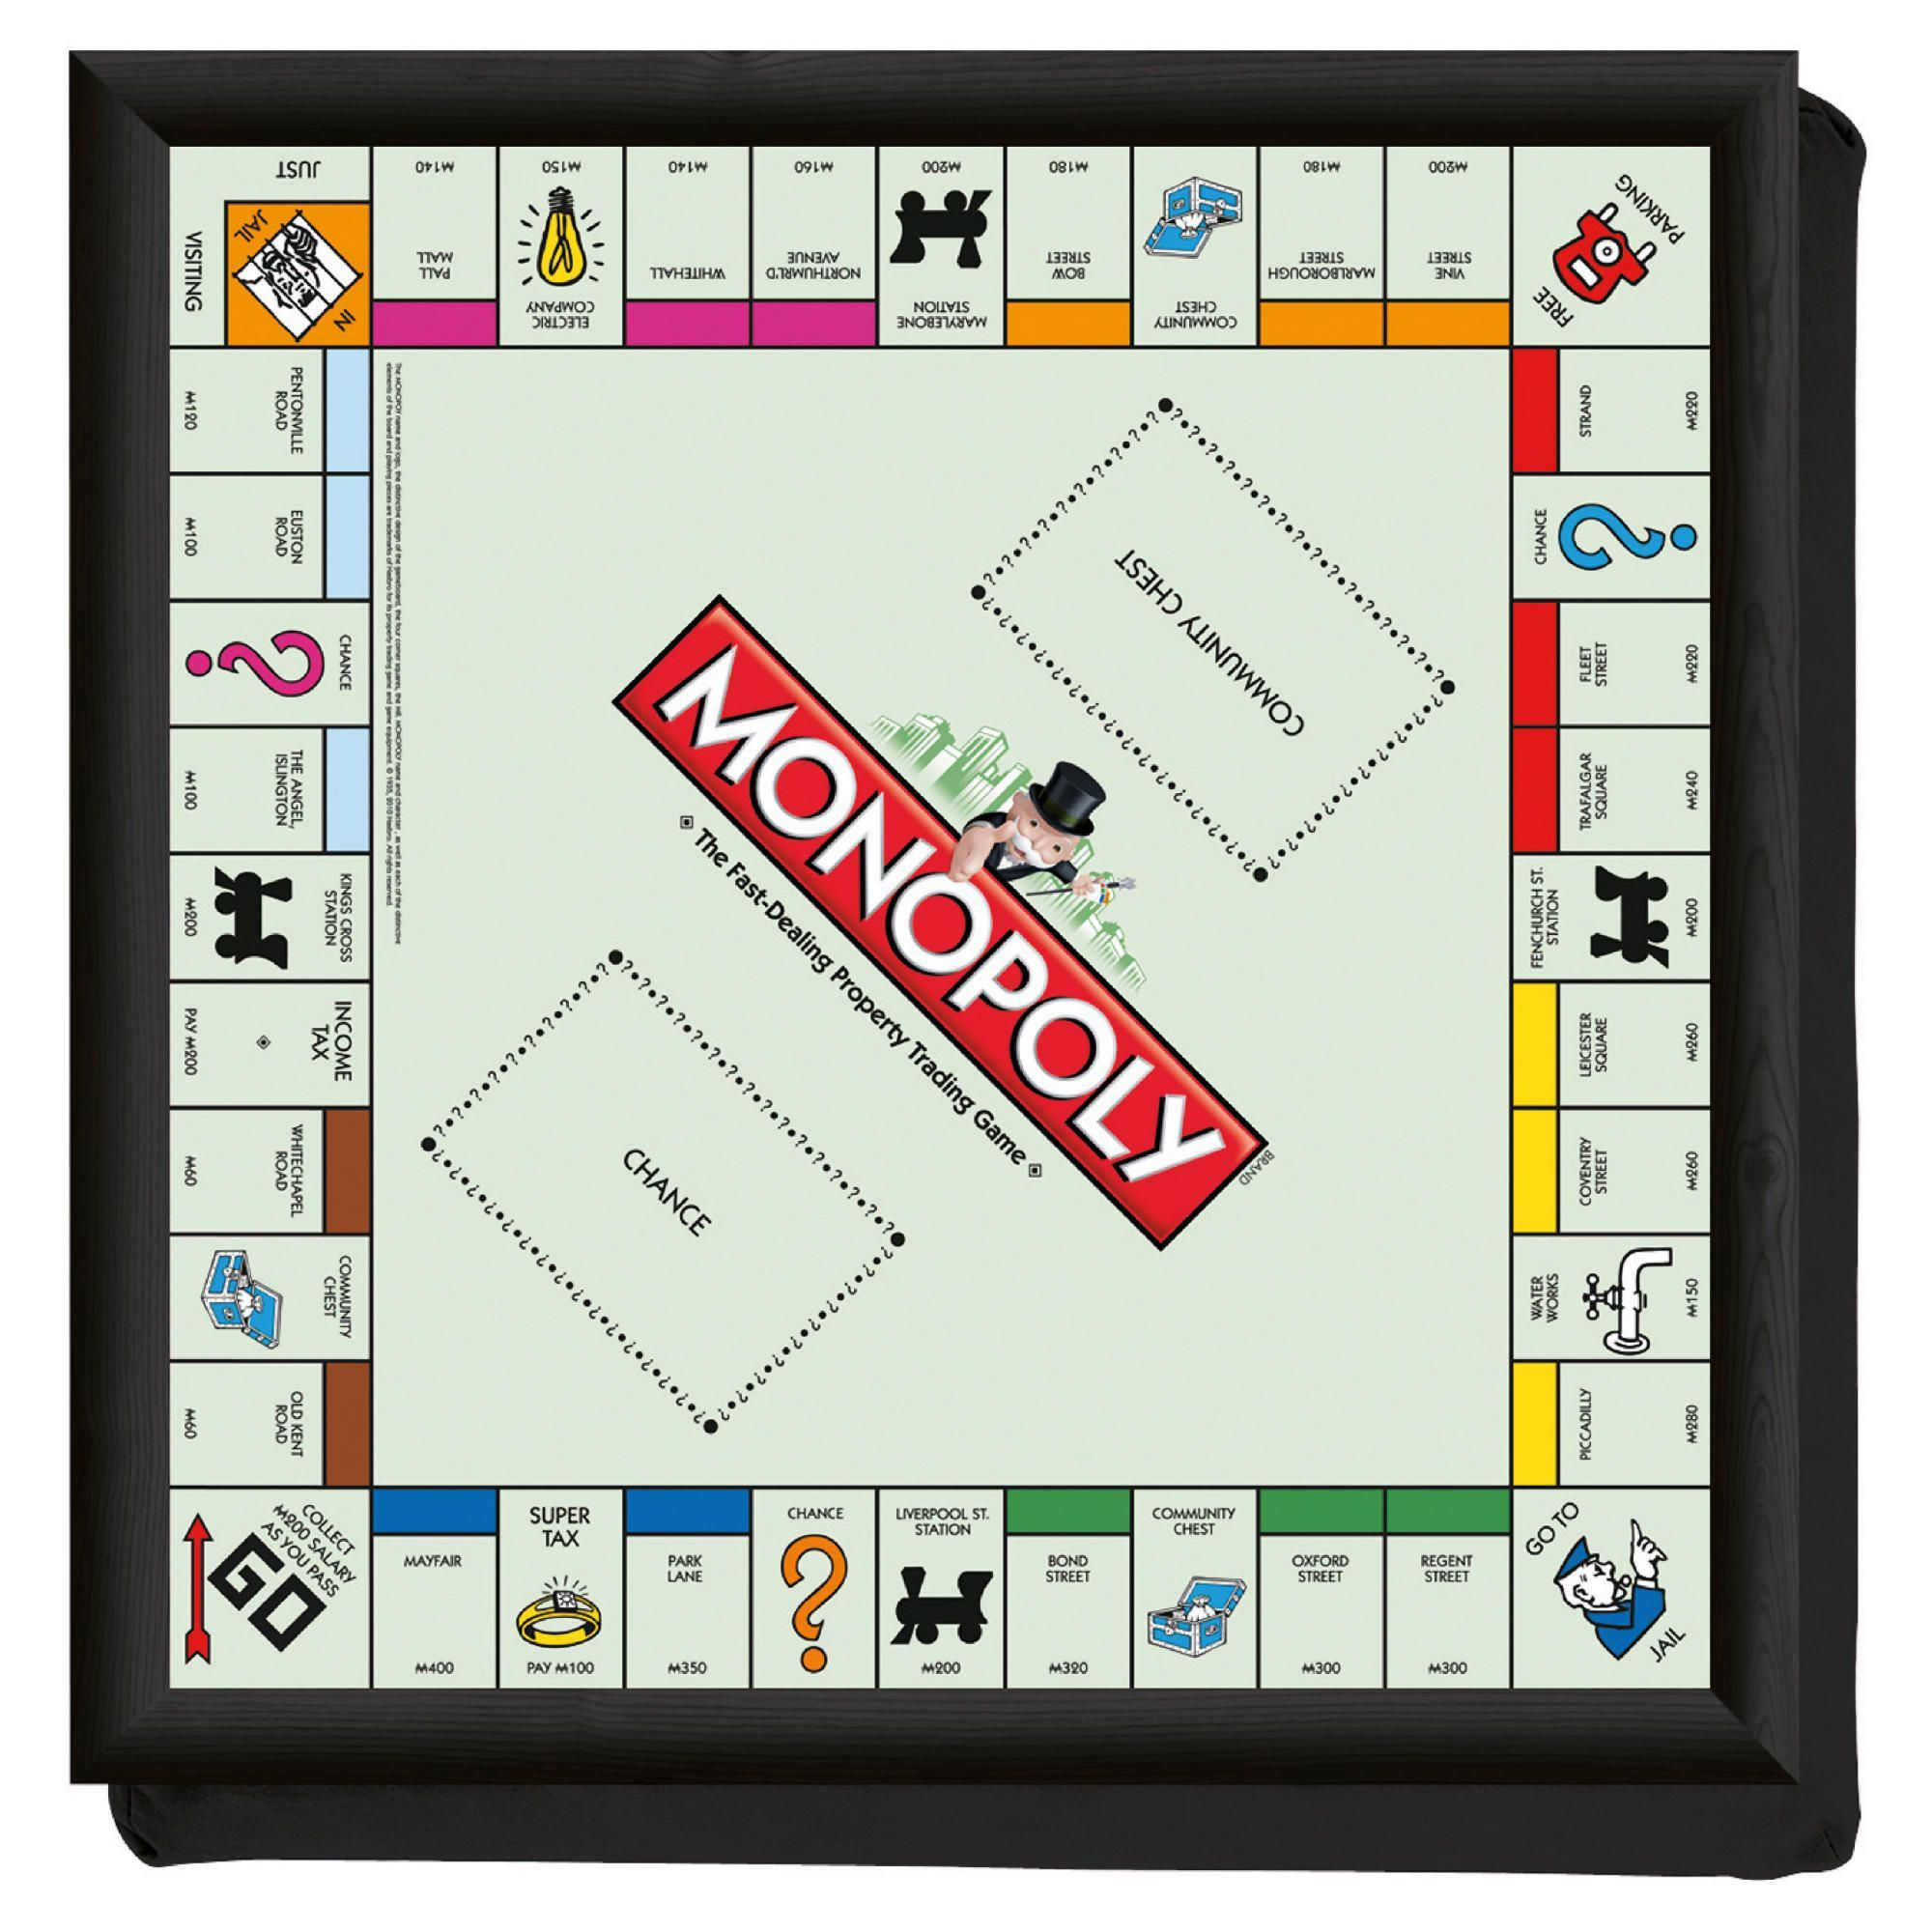 the monopoly Parker brothers introduced monopoly® in 1936 after purchasing the rights from charles darrow, but there have been other versions over the years.